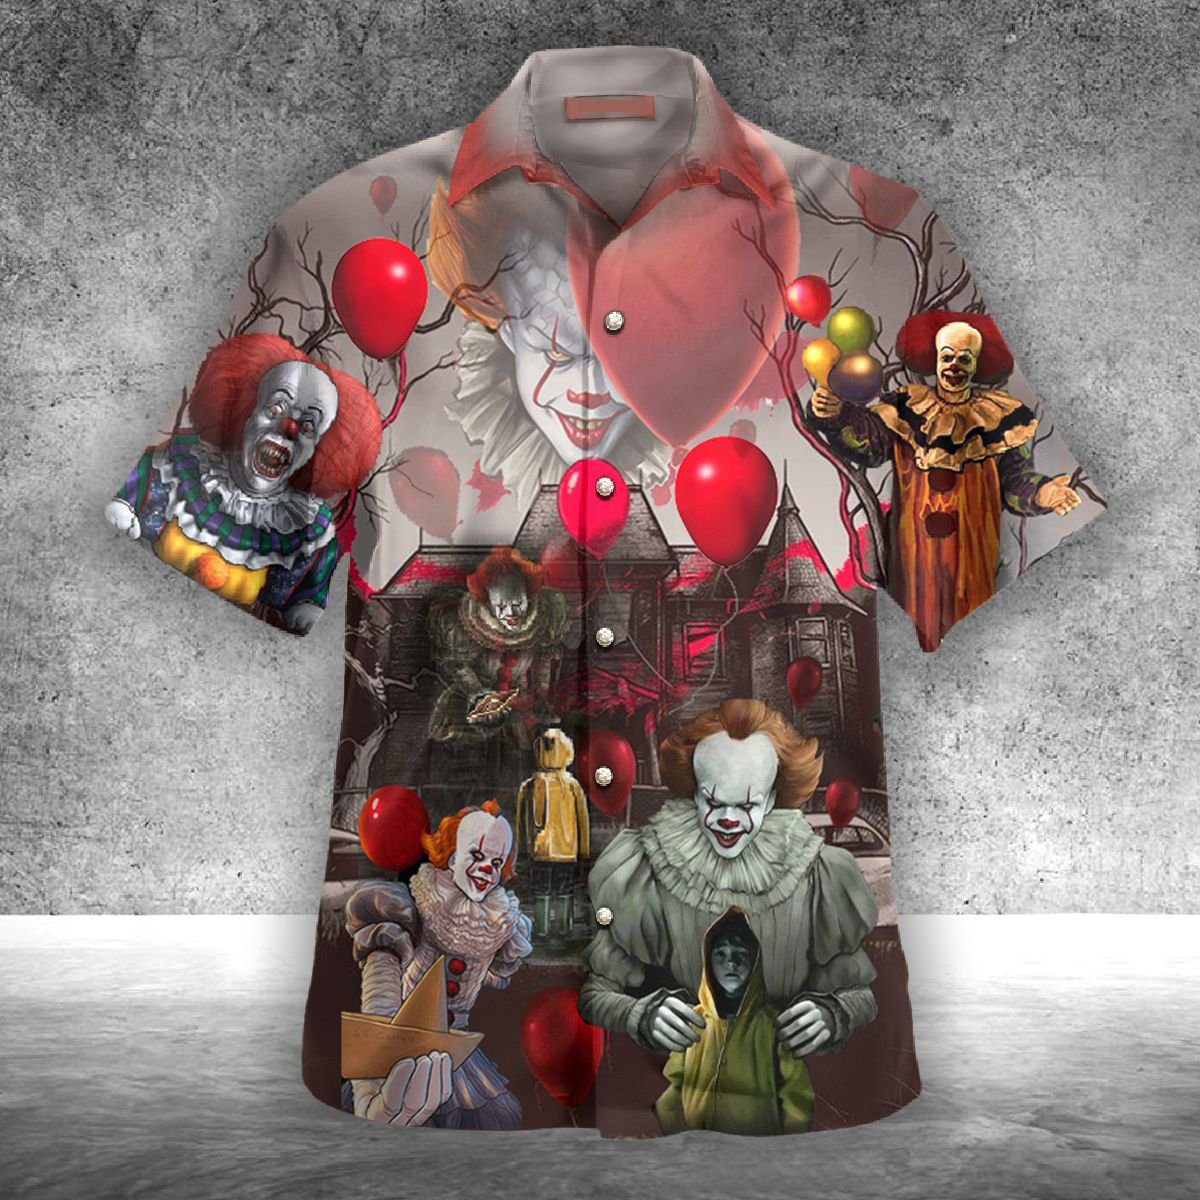 IT Pennywise You'll float too hawaiian shirt - Picture 1